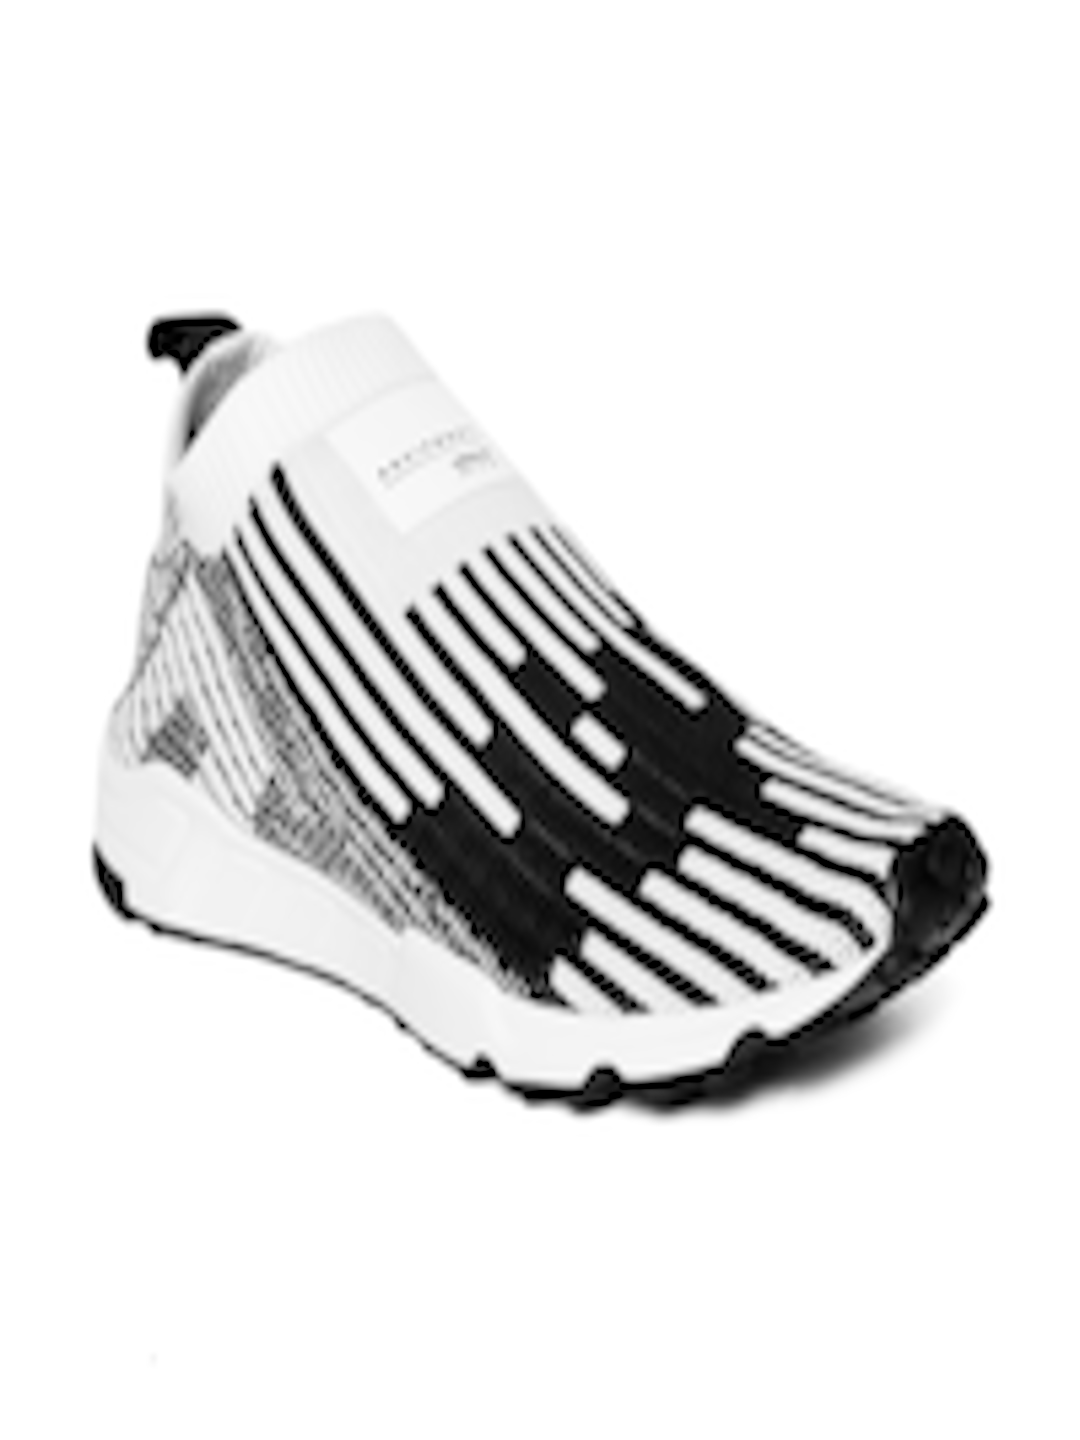 finest selection 98e10 7a2f8 Buy ADIDAS Originals Men White  Black EQT Support SK PK Patterned Sneakers  - Casual Shoes for Men 6842310  Myntra